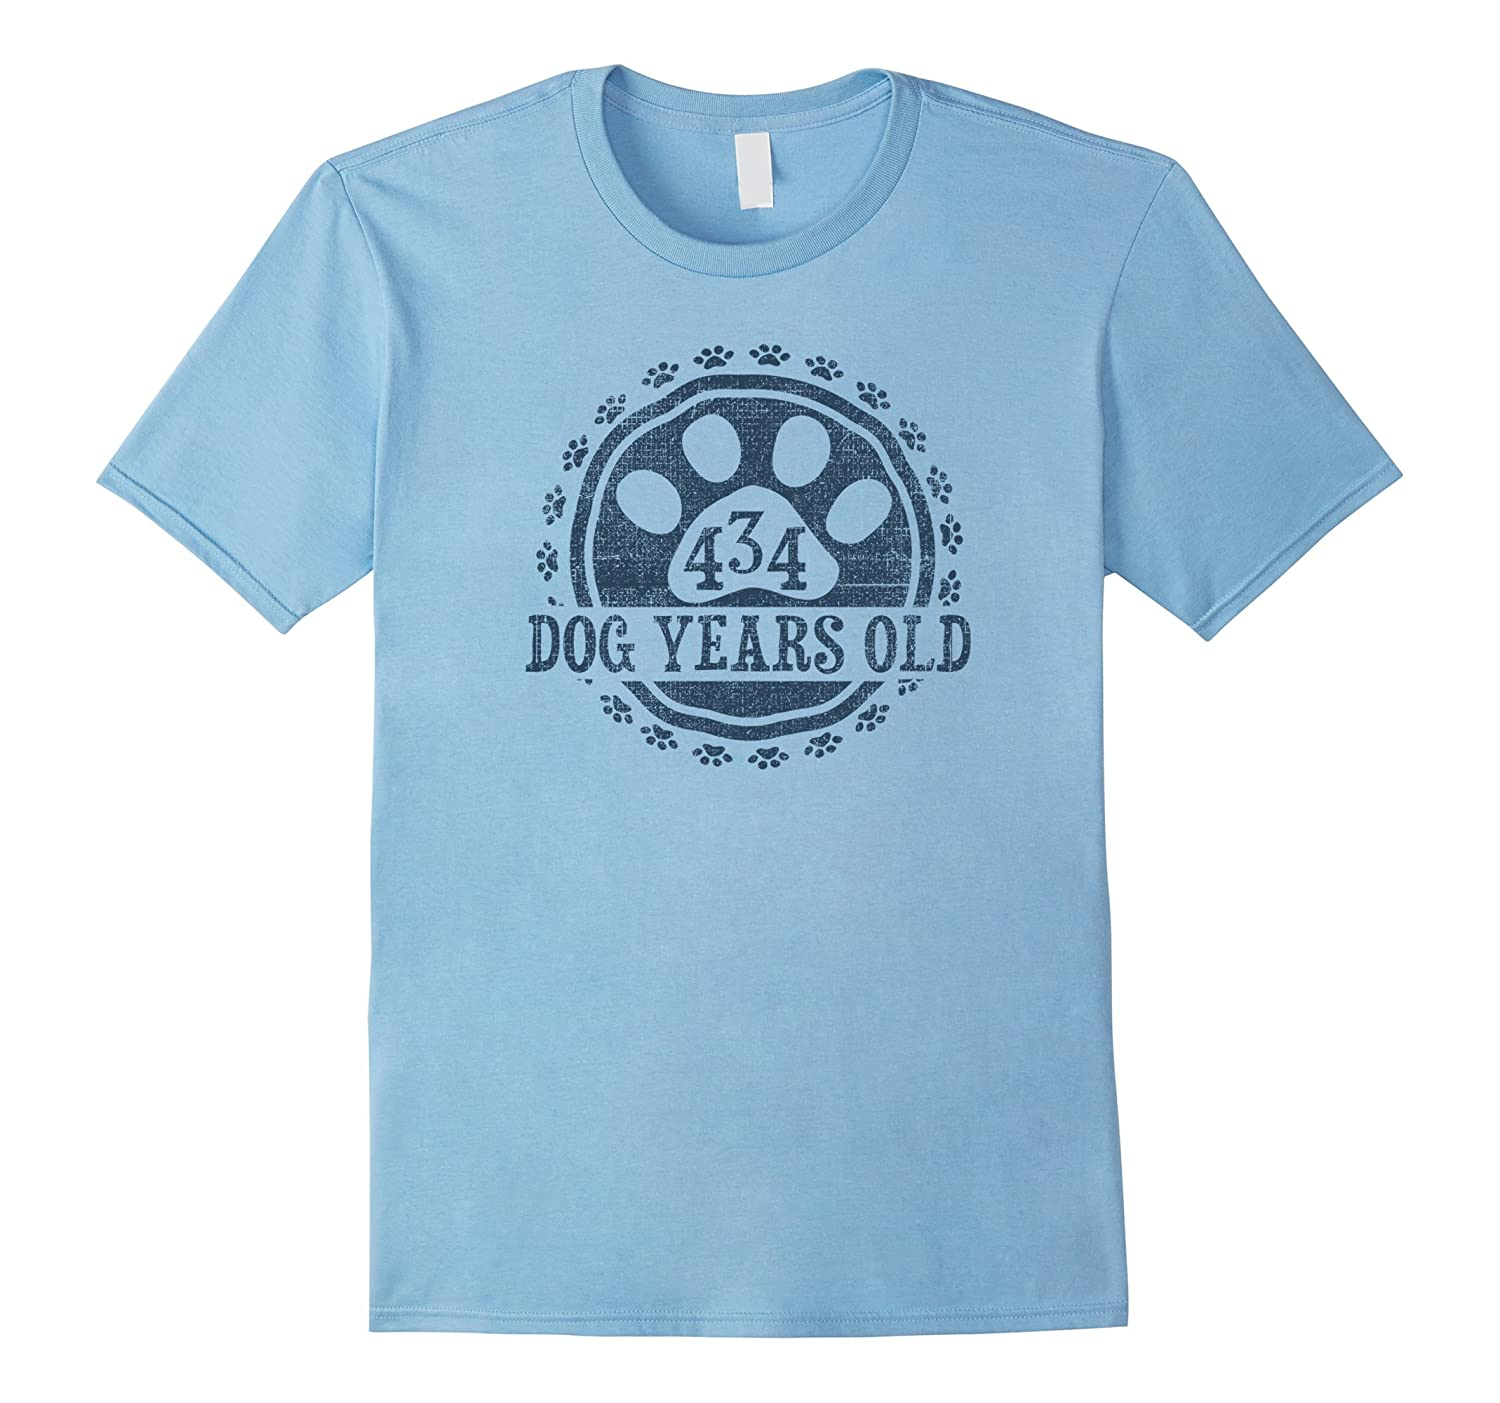 434 Dog Years Old 62 Human Yrs Old 62nd Birthday Gift Shirt-TH